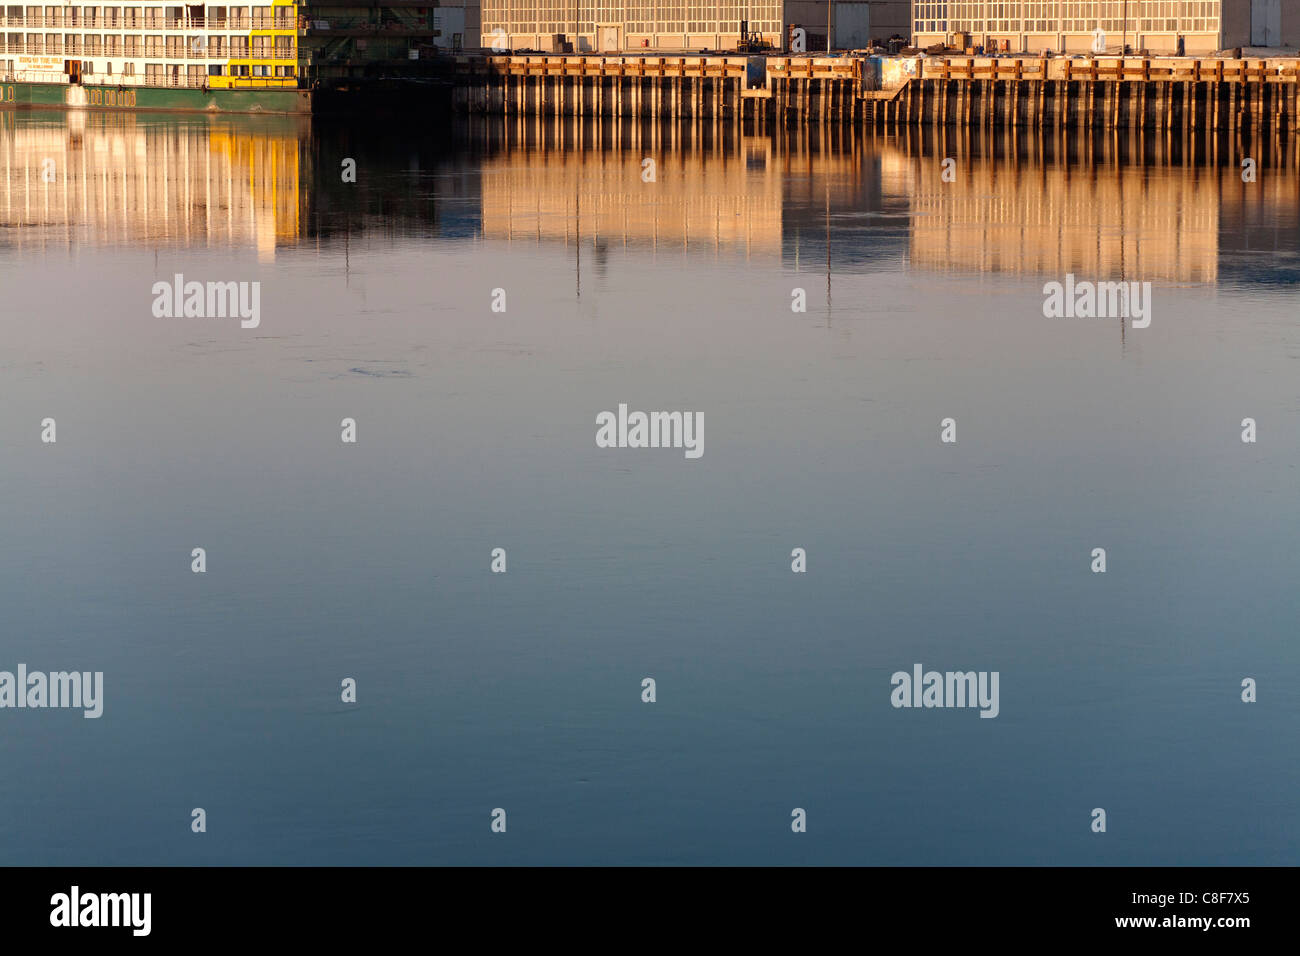 Reflections in golden water in early morning light of redundant cruise ships moored near industrial buildings on - Stock Image